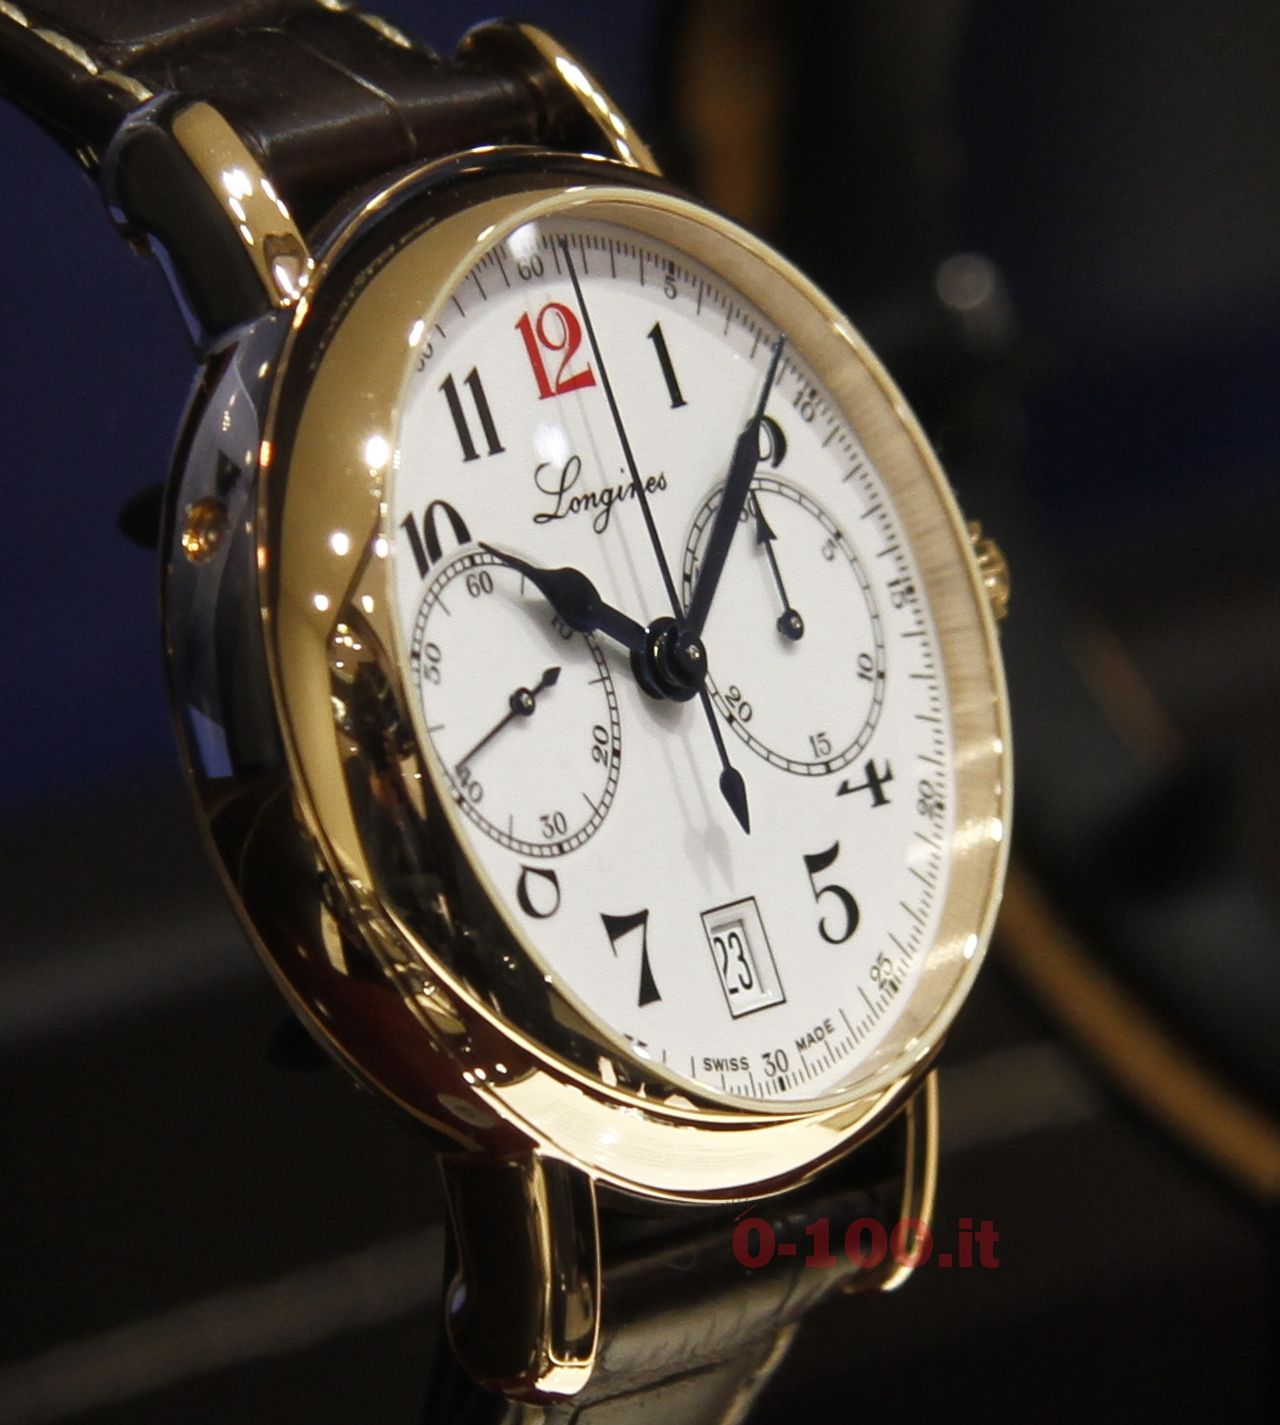 Longines Column-Wheel-Single-Push-Piece-Chronograph-0-100_12